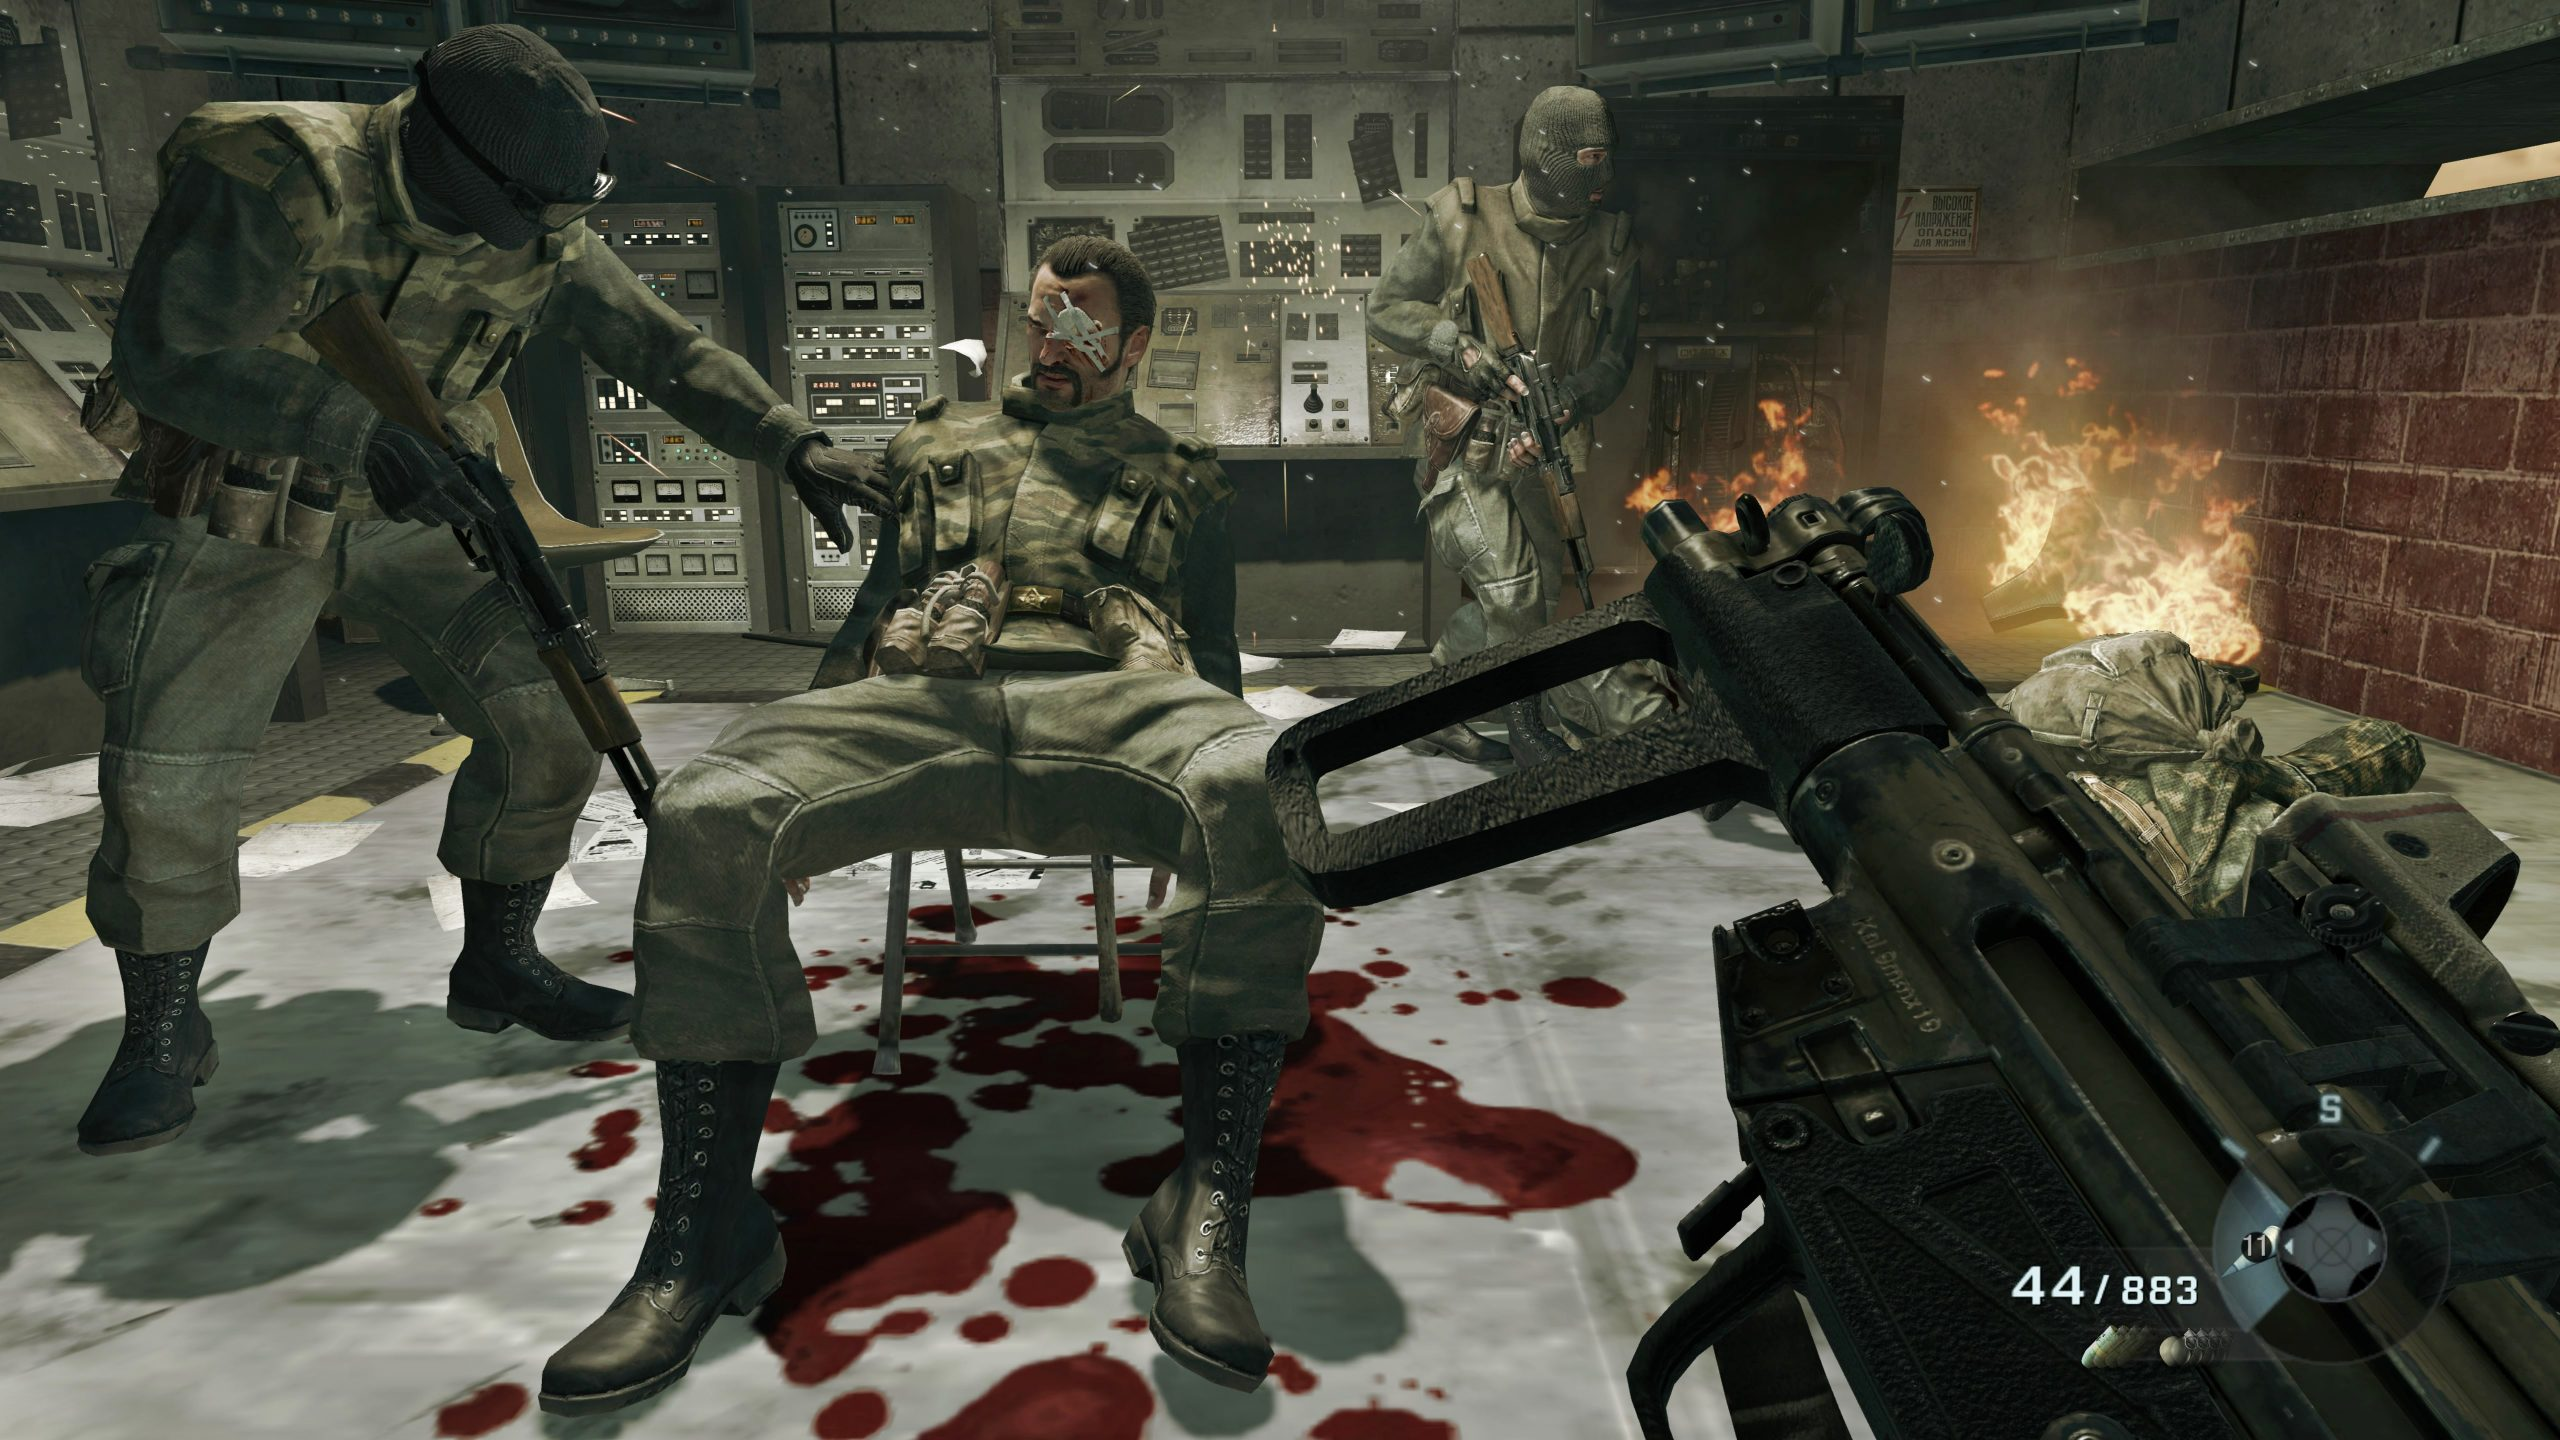 CALL OF DUTY BLACK OPS 1 PC Latest Version Free Download